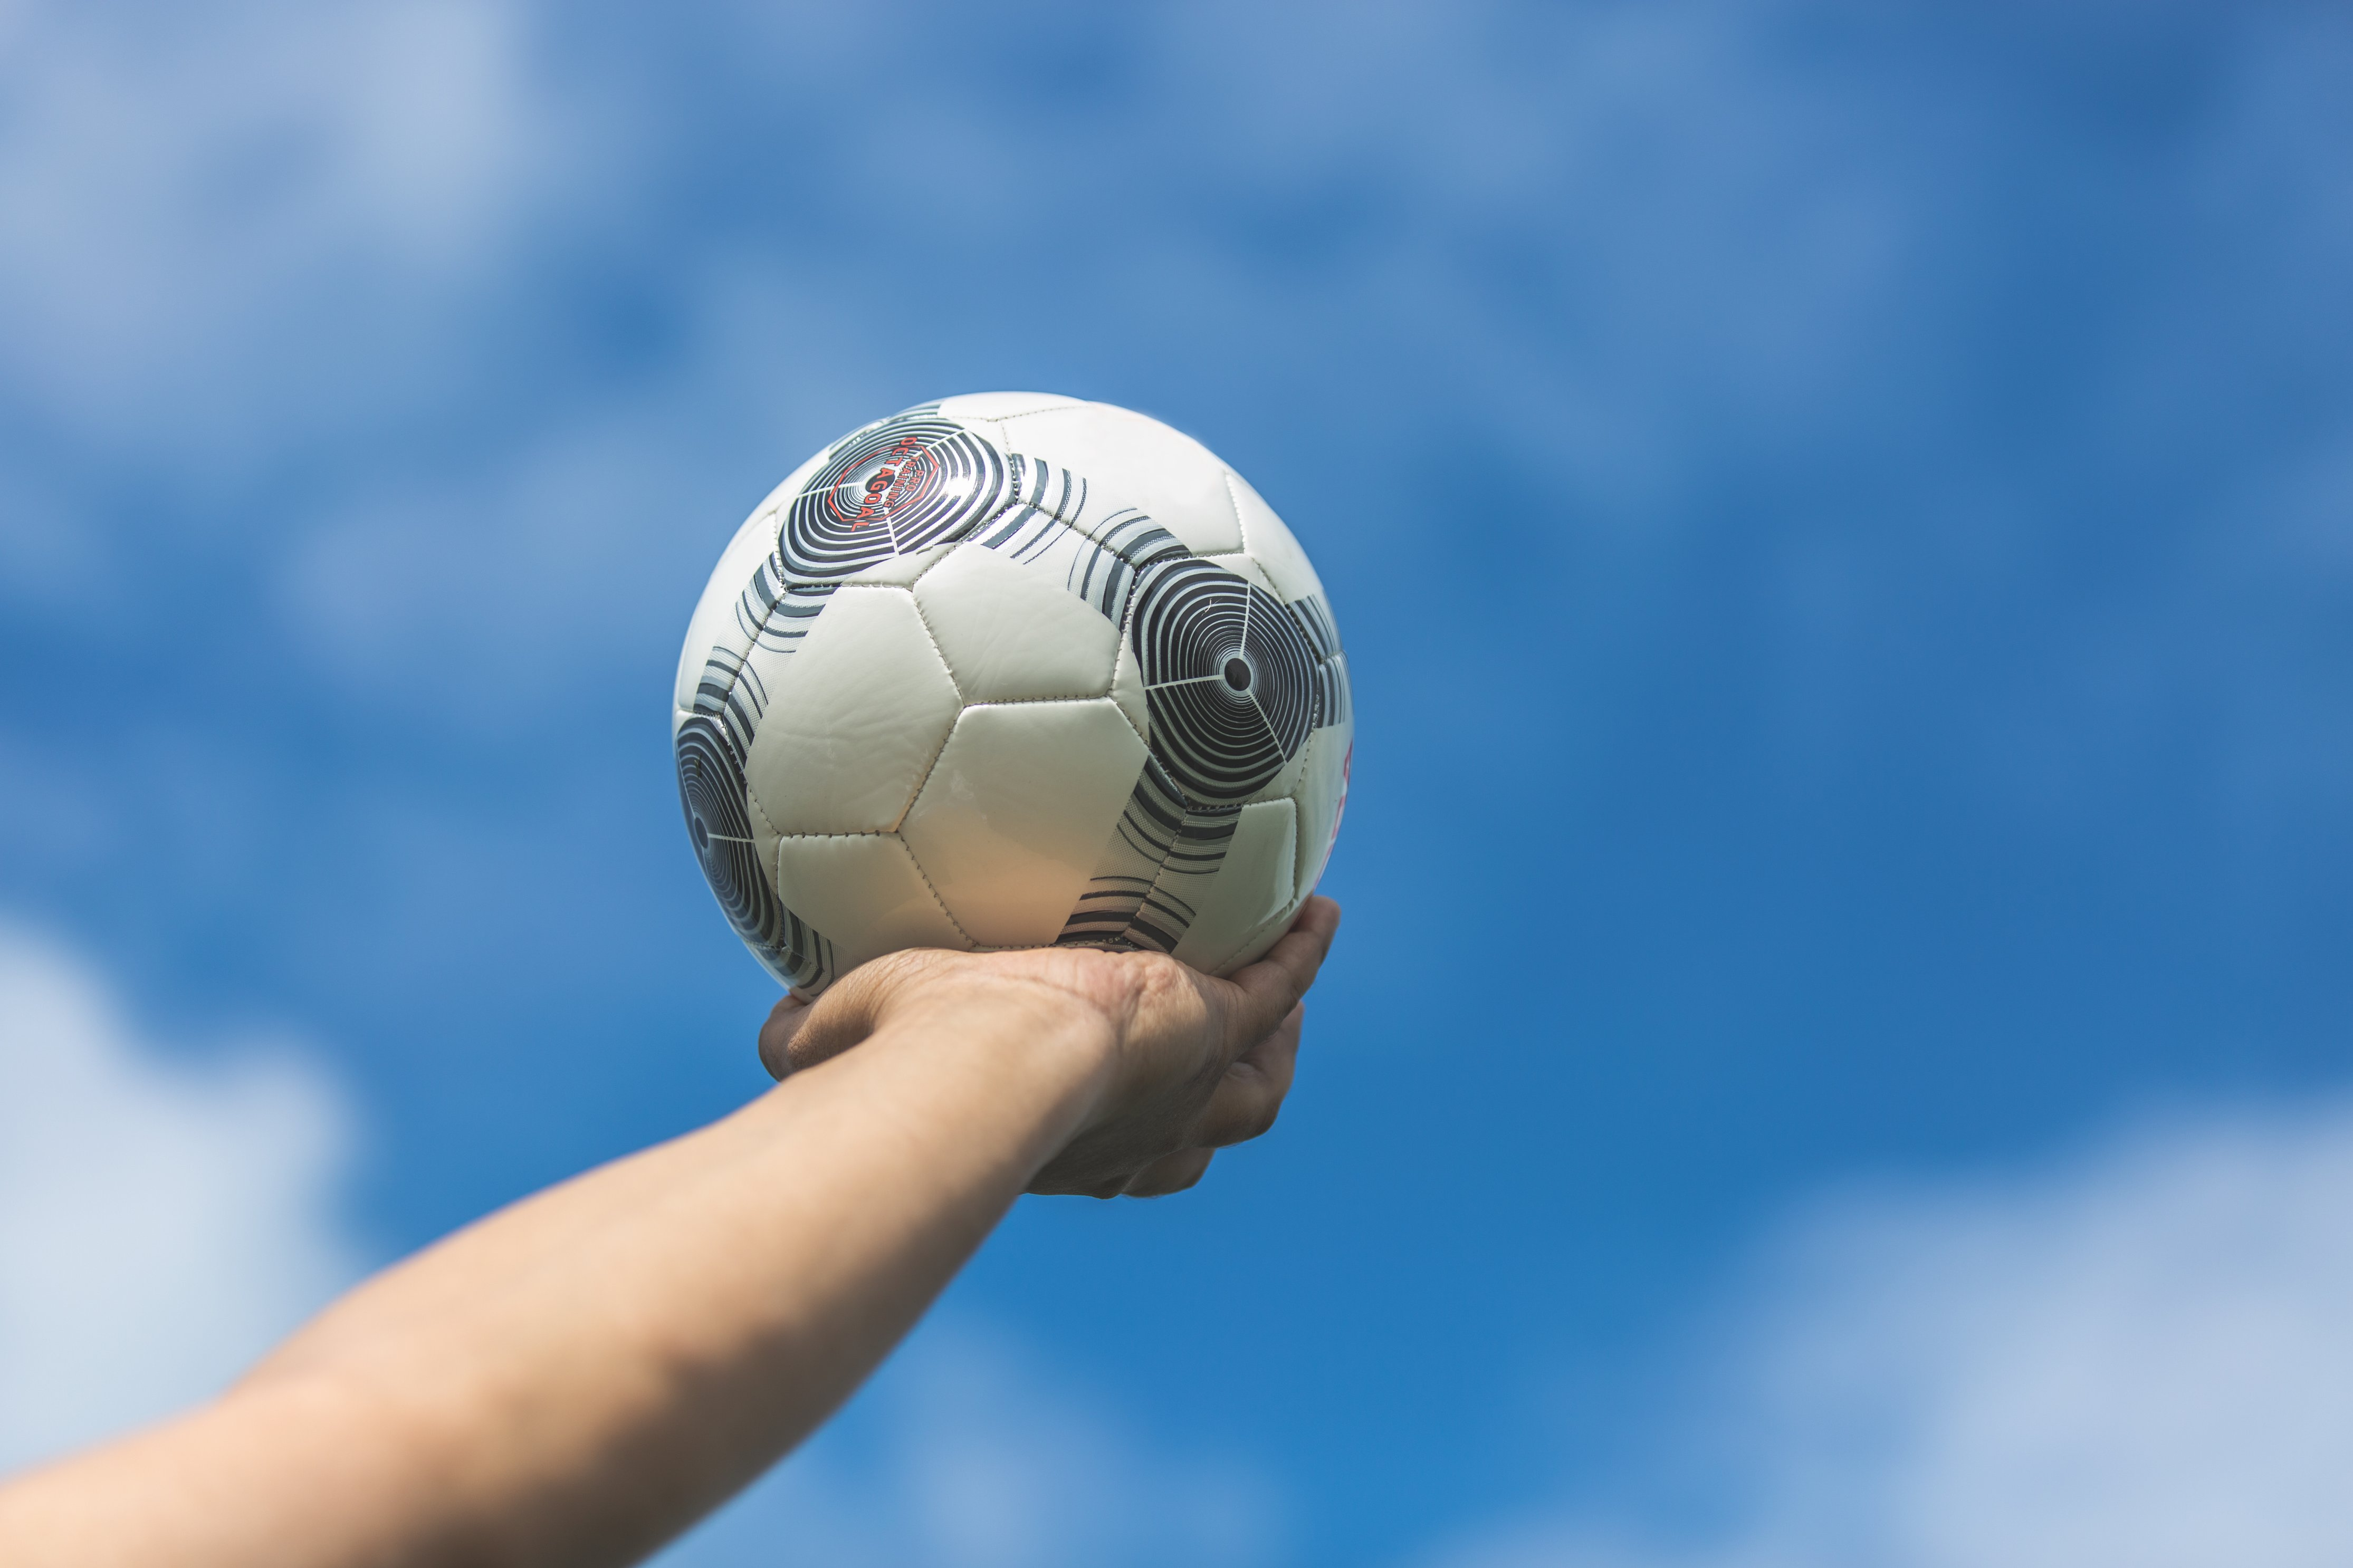 holding-out-soccer-ball-to-the-blue-sky 4460x4460